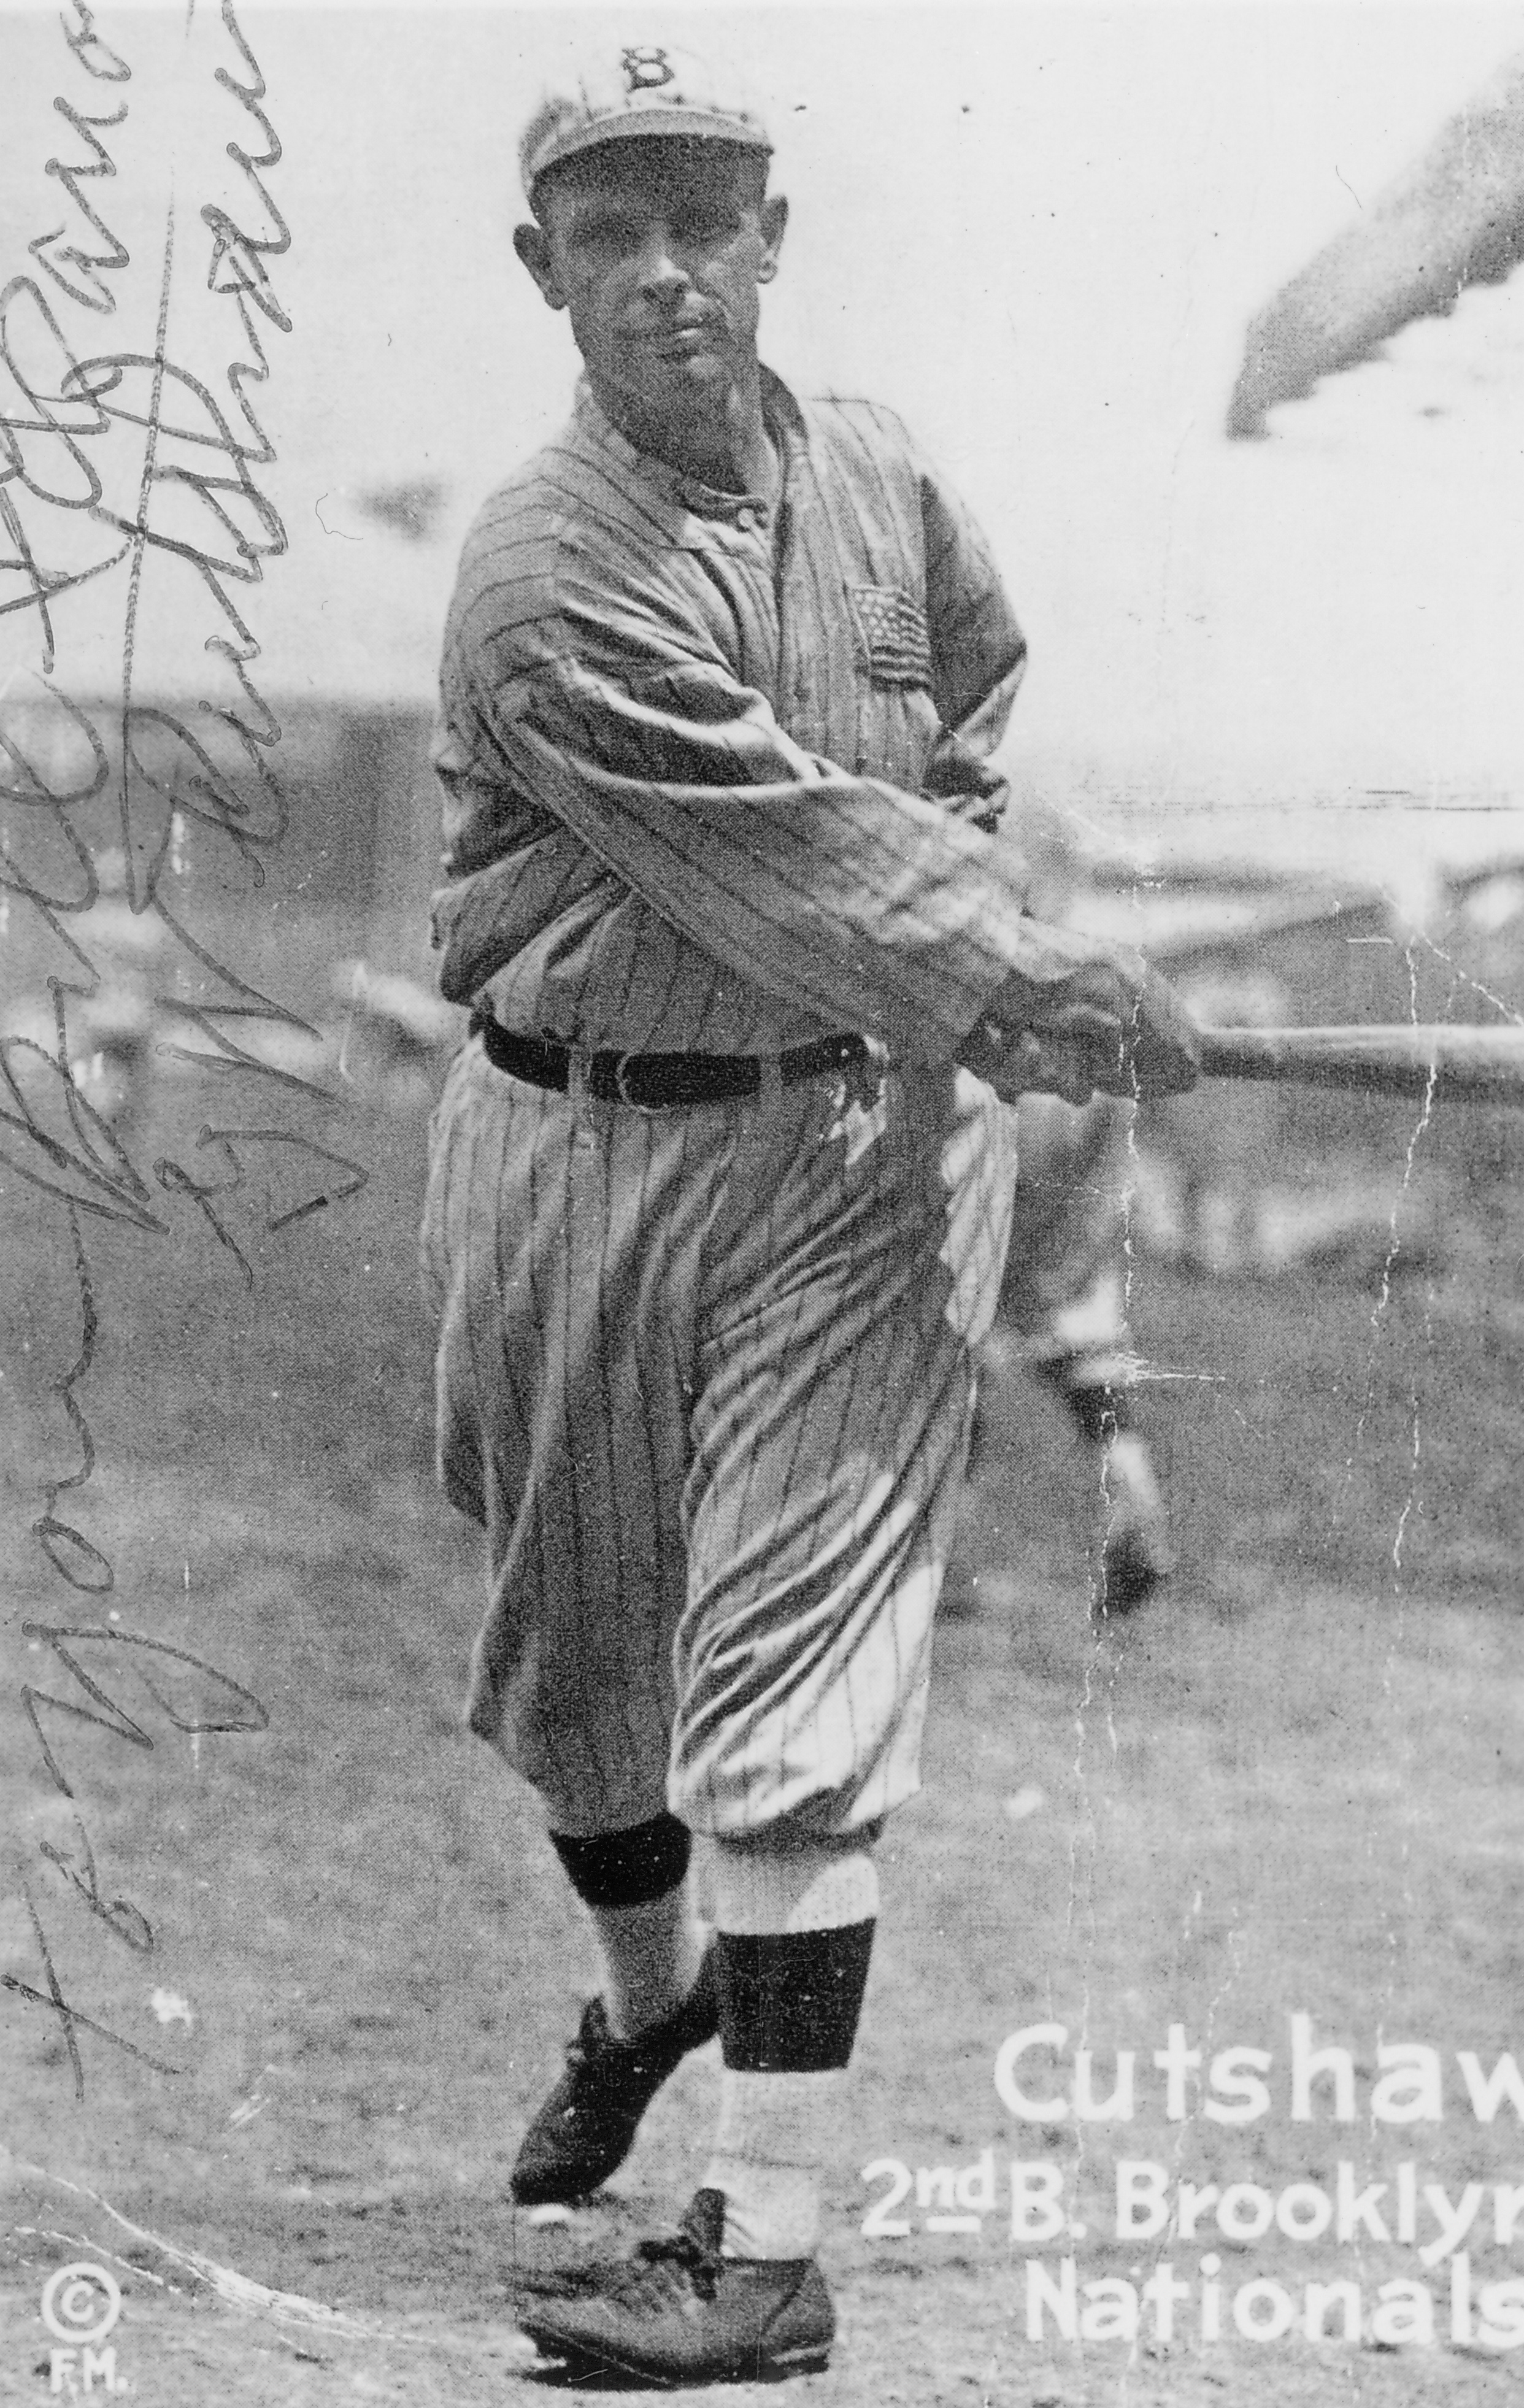 Most famous alumni of the 26-inning game against Decatur on May 31, 1909. He played more than 1,500 major league games.